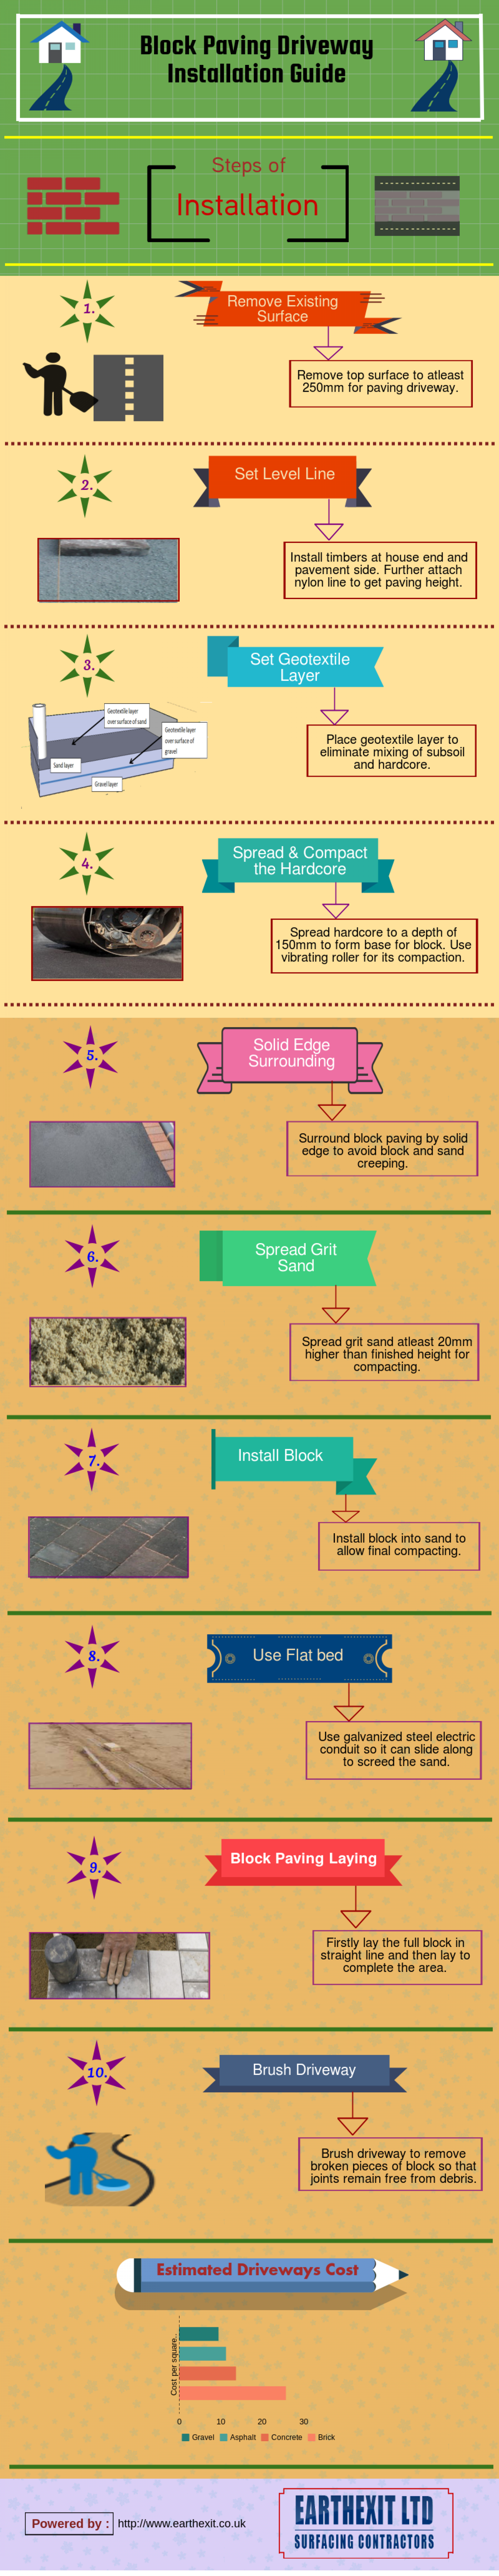 Block Paving Driveway Installation Guide Infographic